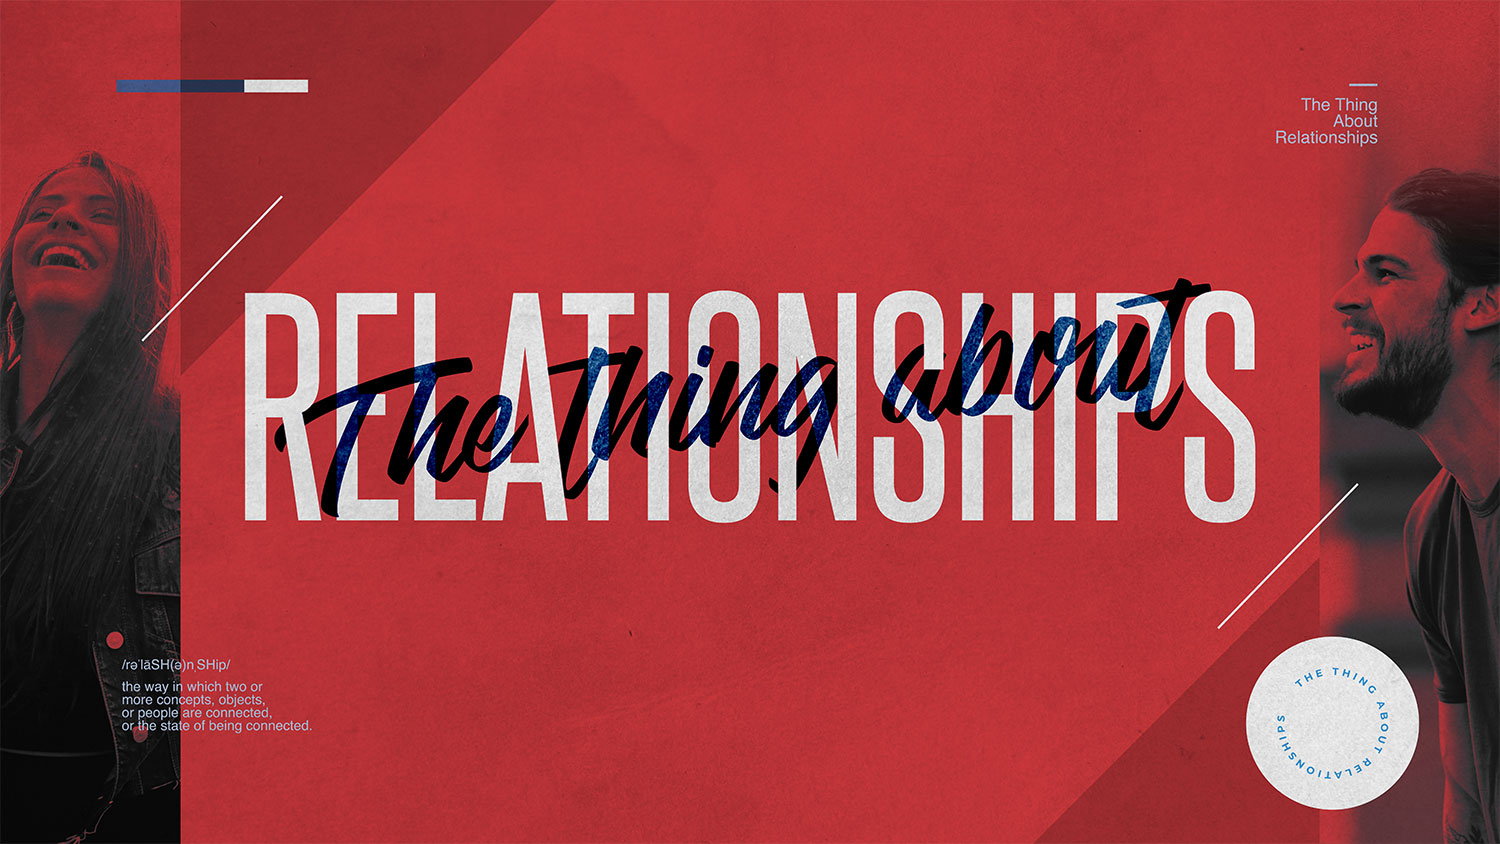 The Thing About Relationships